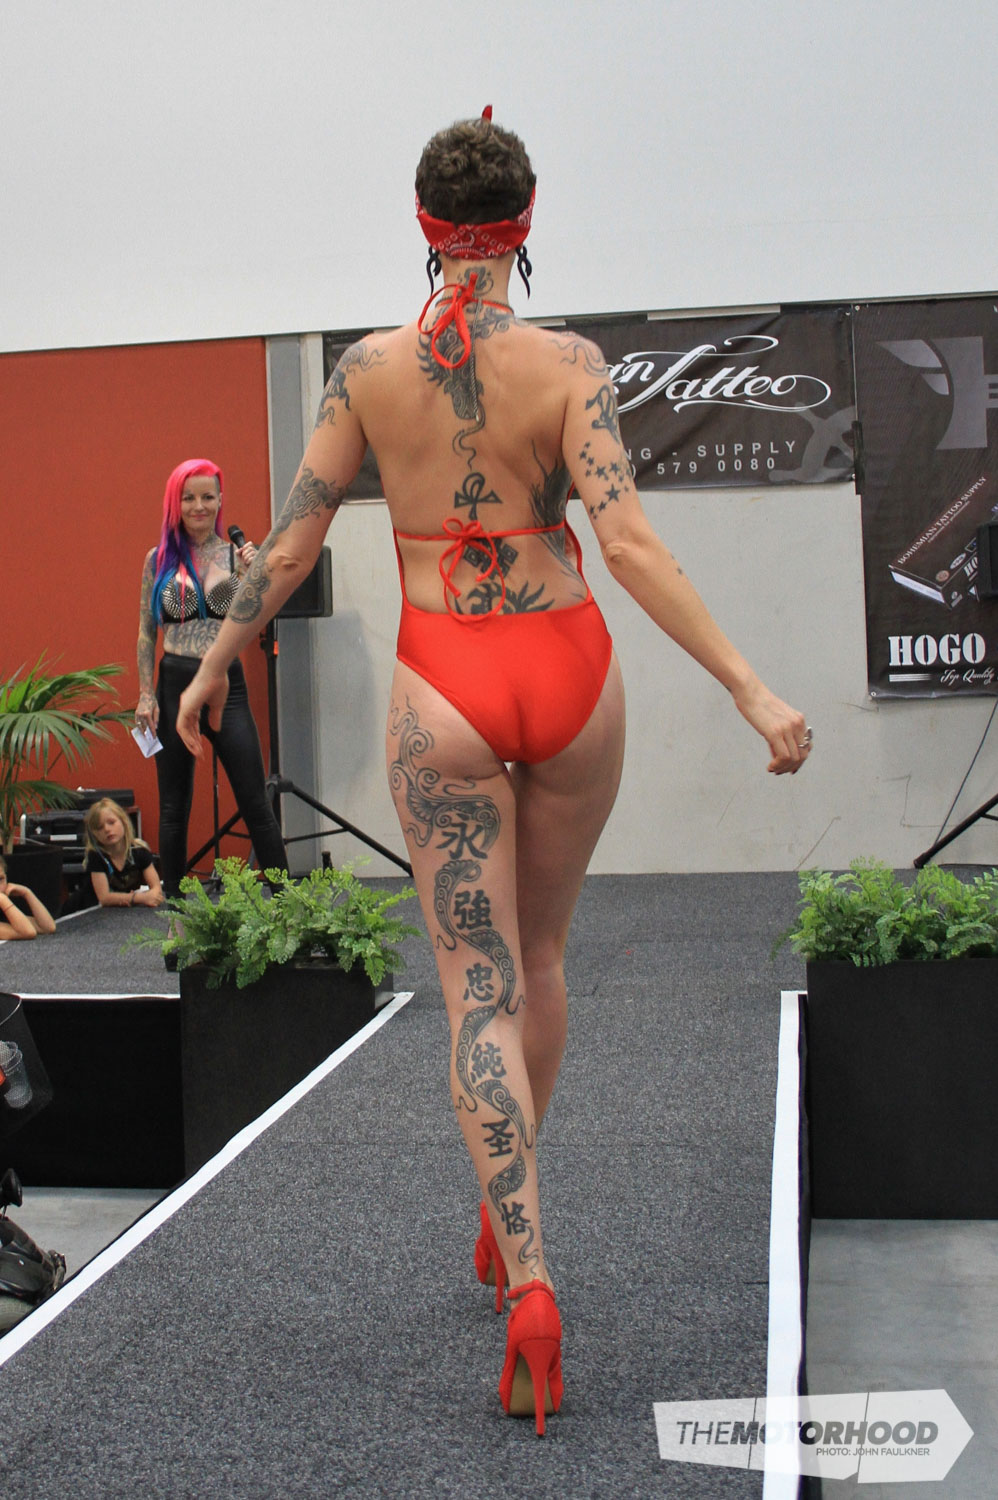 Emilie from San Francisco was awarded second place in Miss Tattoo 2015